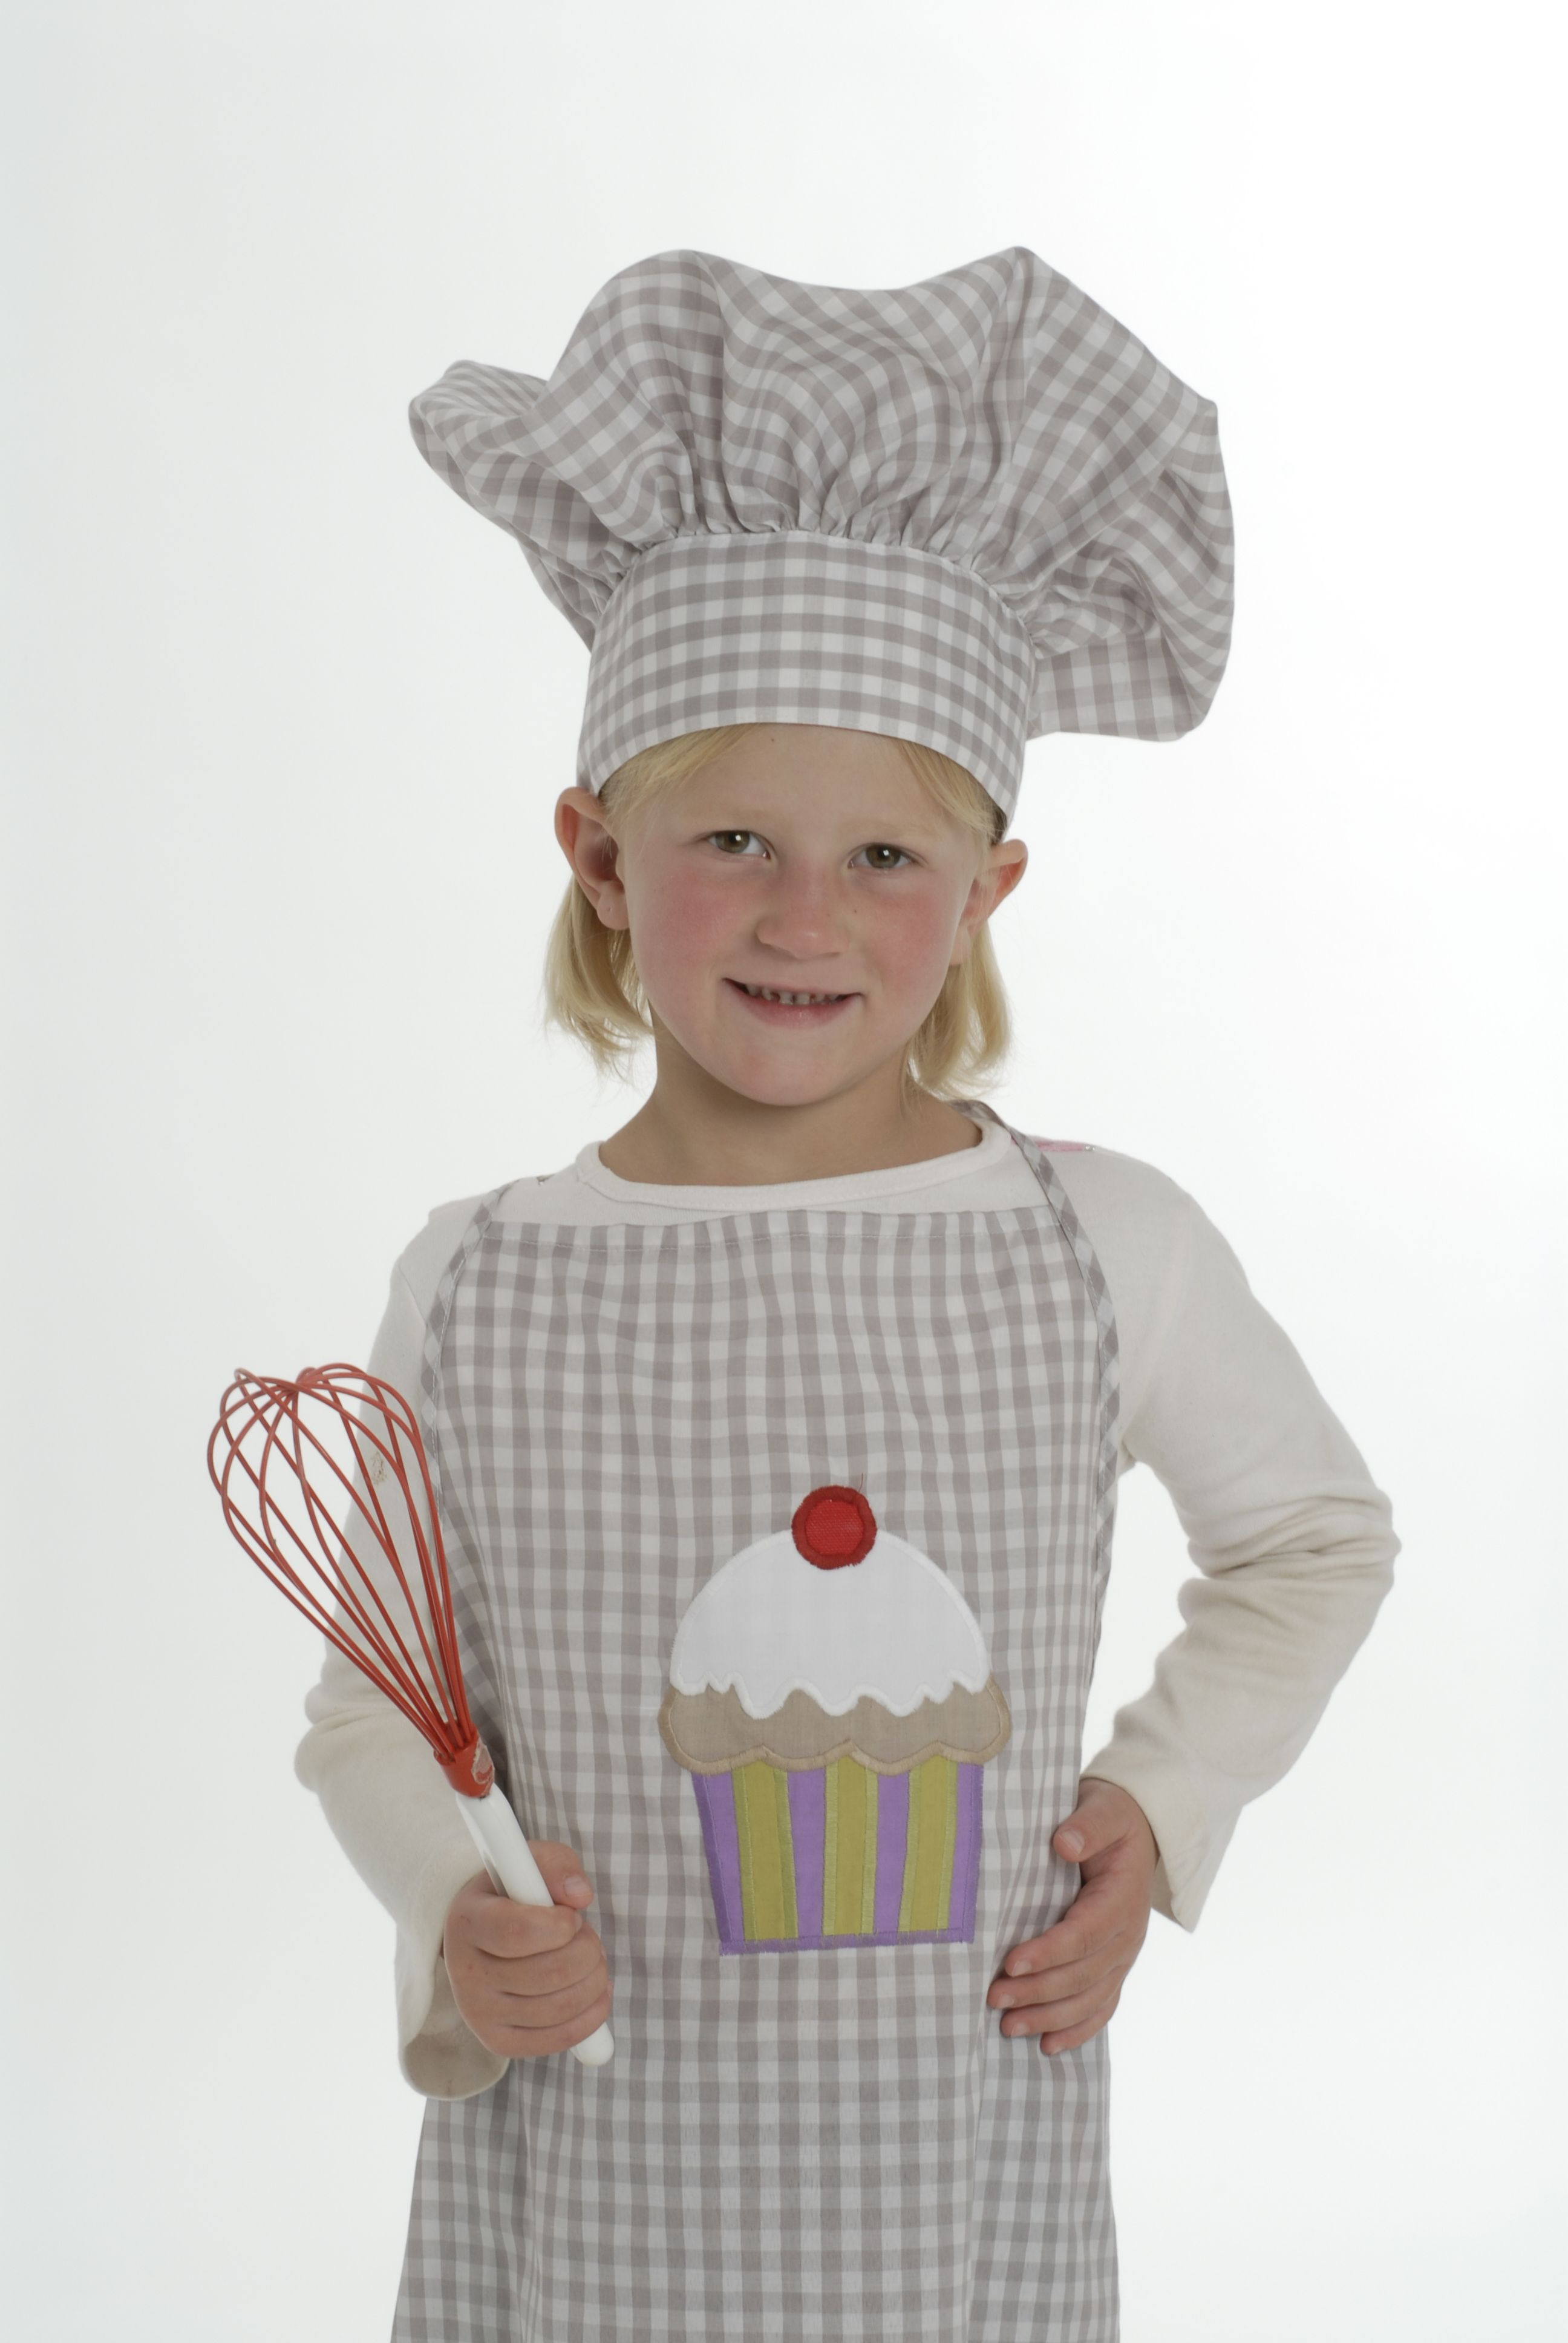 Chef uniforms for kids   Girls clothing   Pinterest   Apron and Craft